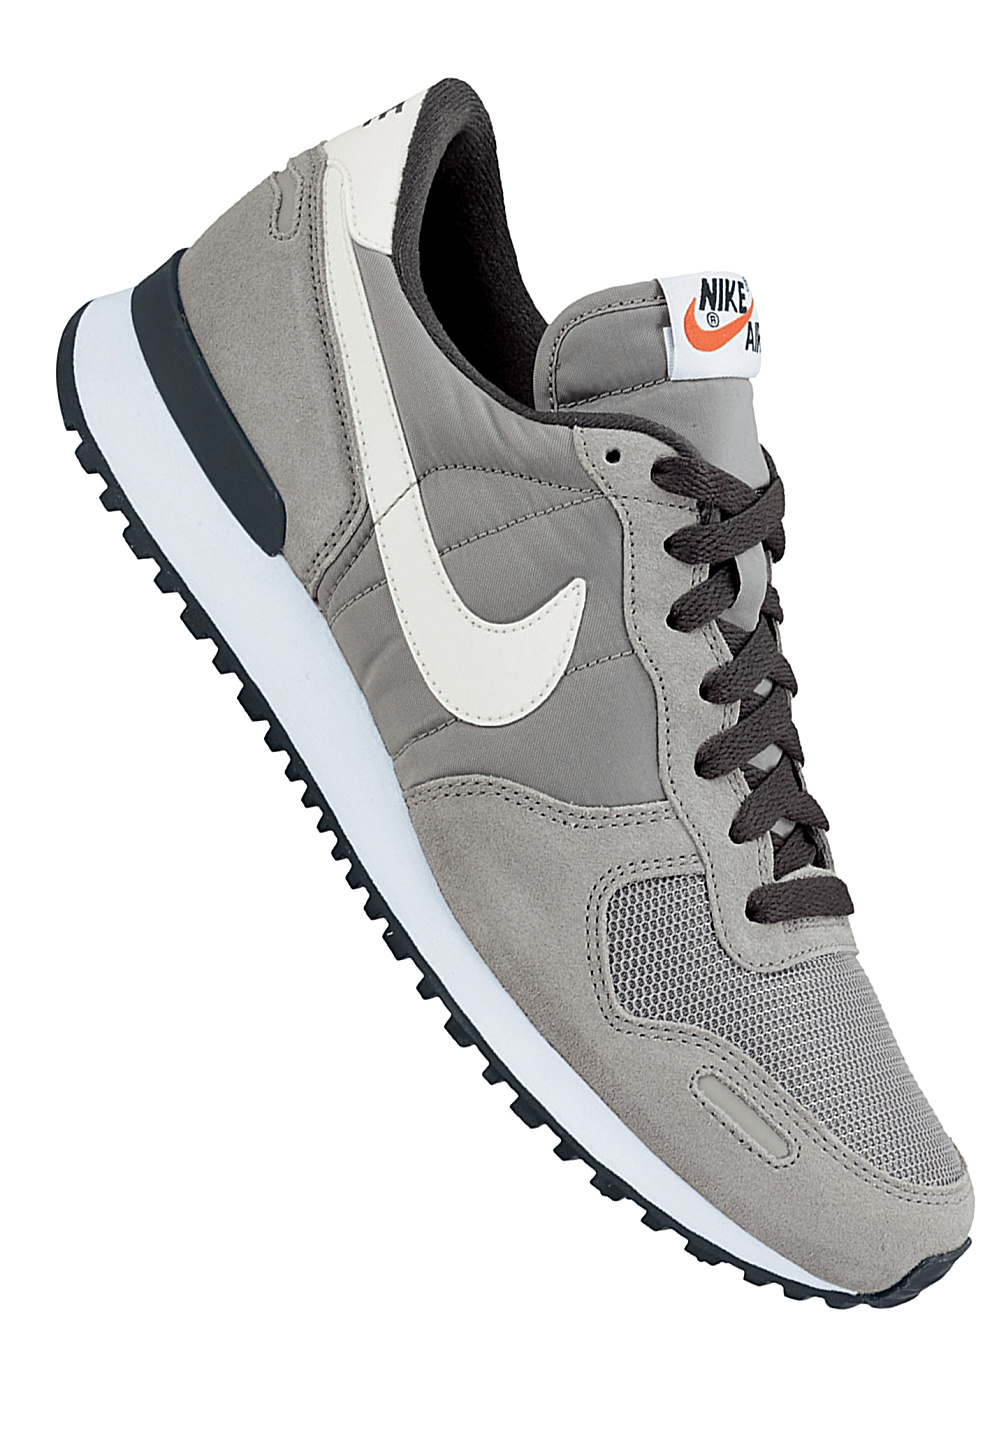 buy popular 50f1c c6c58 NIKE SPORTSWEAR Air Vortex Retro - Sneakers for Men - Grey -